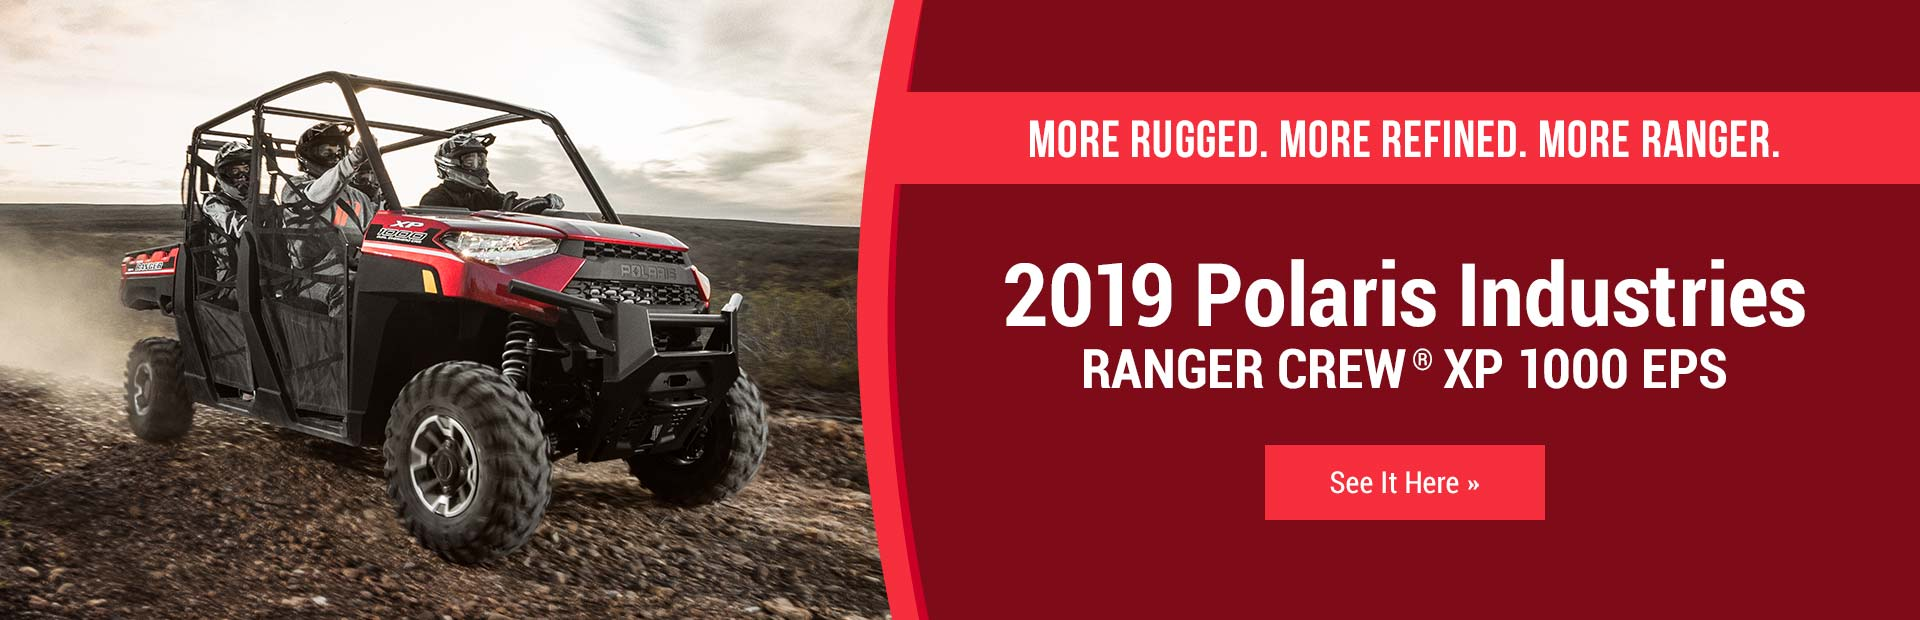 hight resolution of 2019 polaris industries ranger crew xp 1000 eps click here to view the model